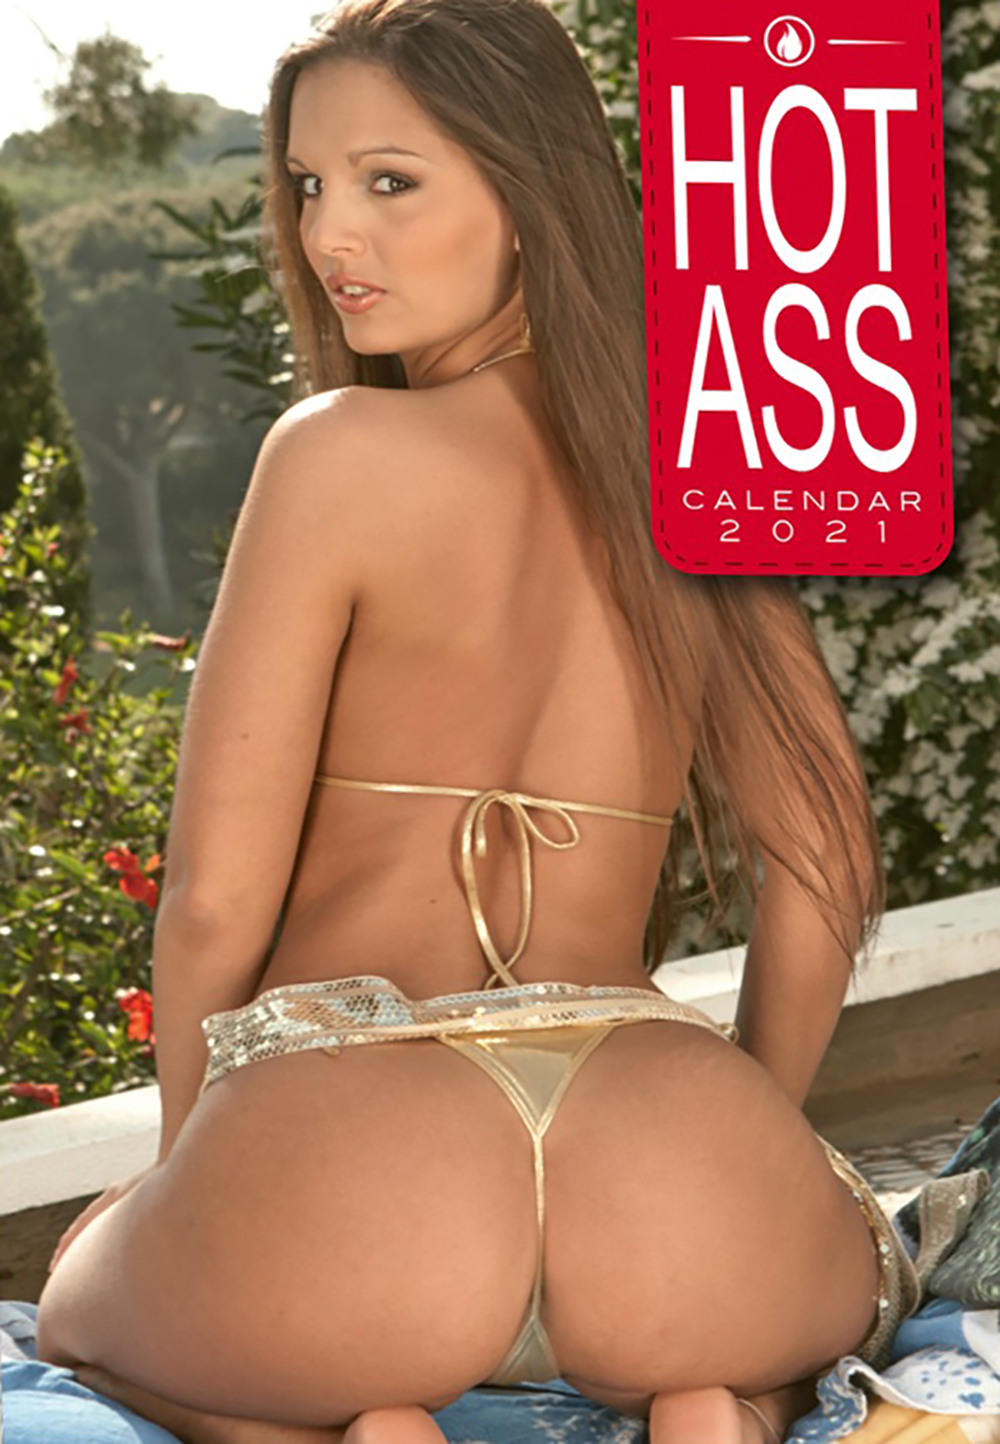 Hot Ass 2021 Wall Calendar